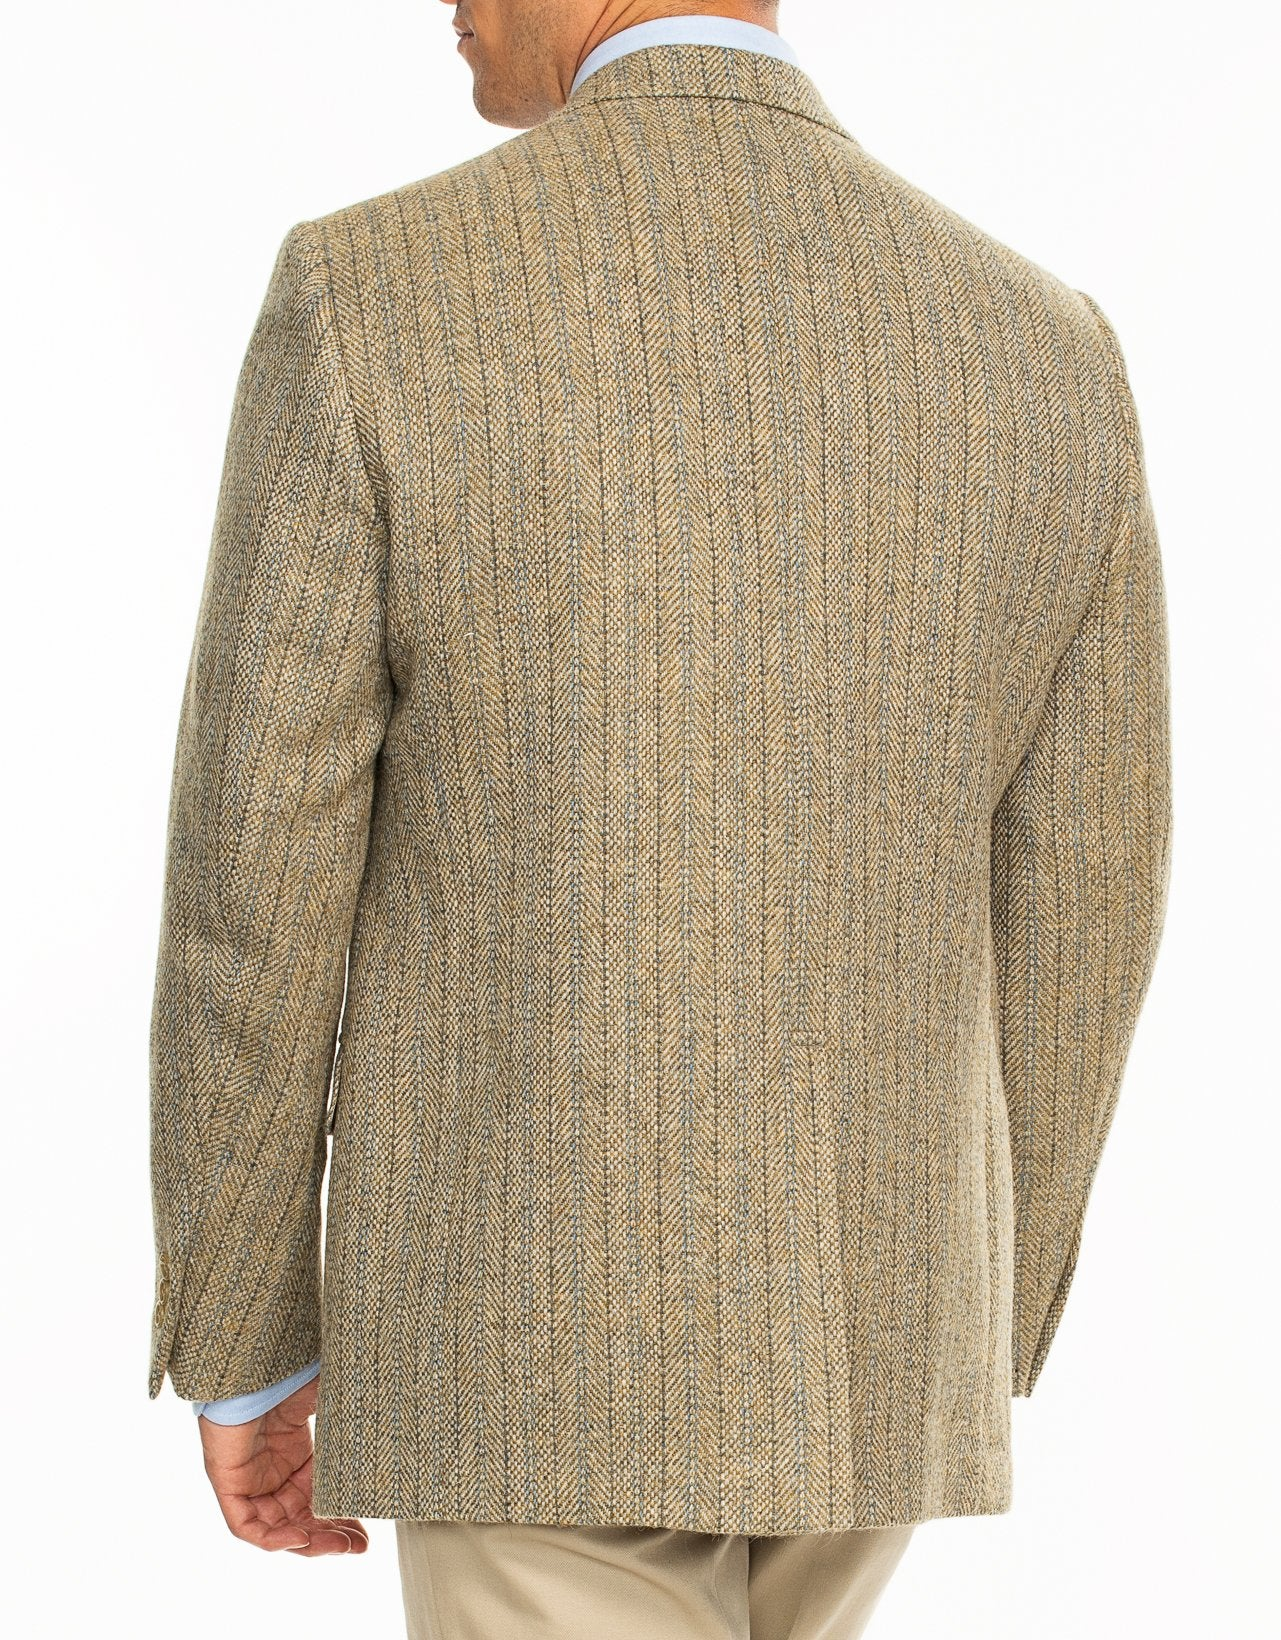 DONEGAL TWEED BEIGE WITH BLUE STRIPES